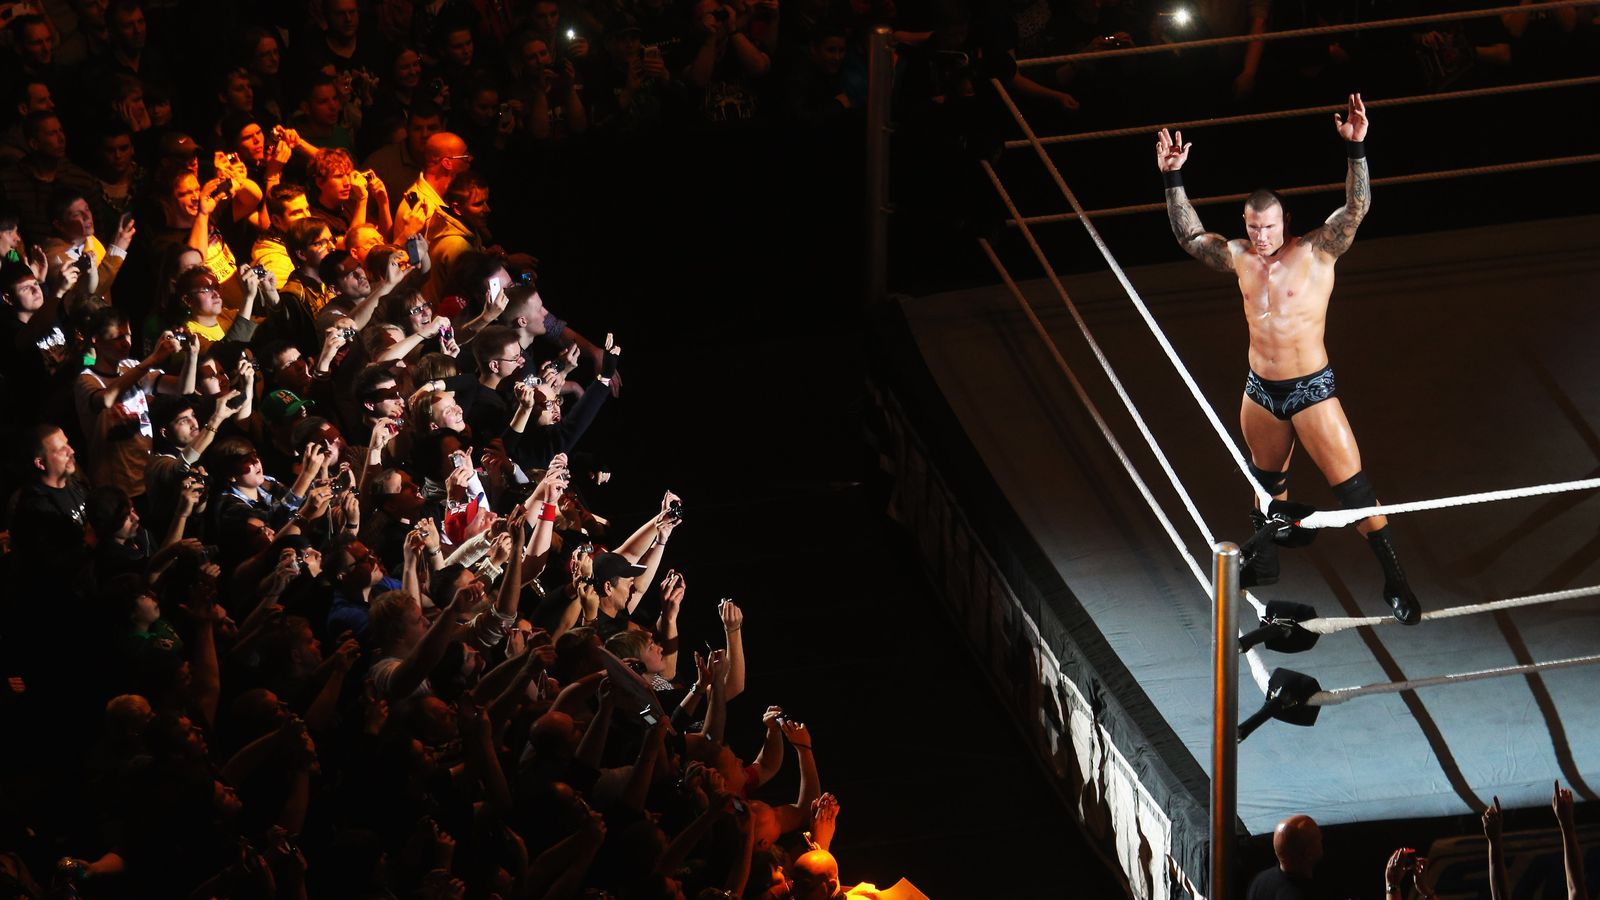 Let's Say Nice Things About: Wrestling fans - Cageside Seats